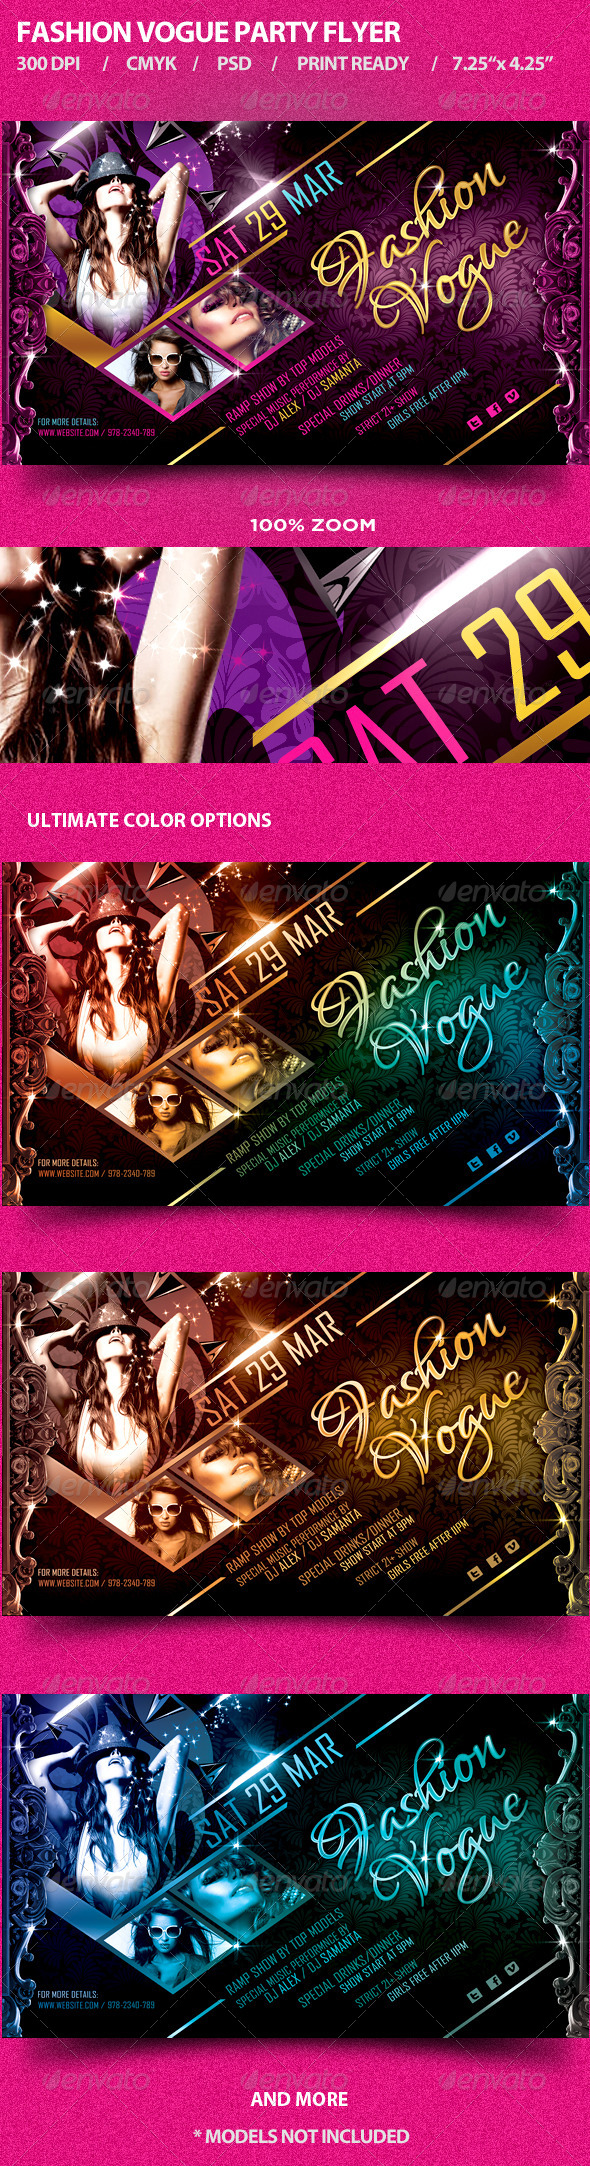 GraphicRiver Fashion Vogue Party Flyer 4291988